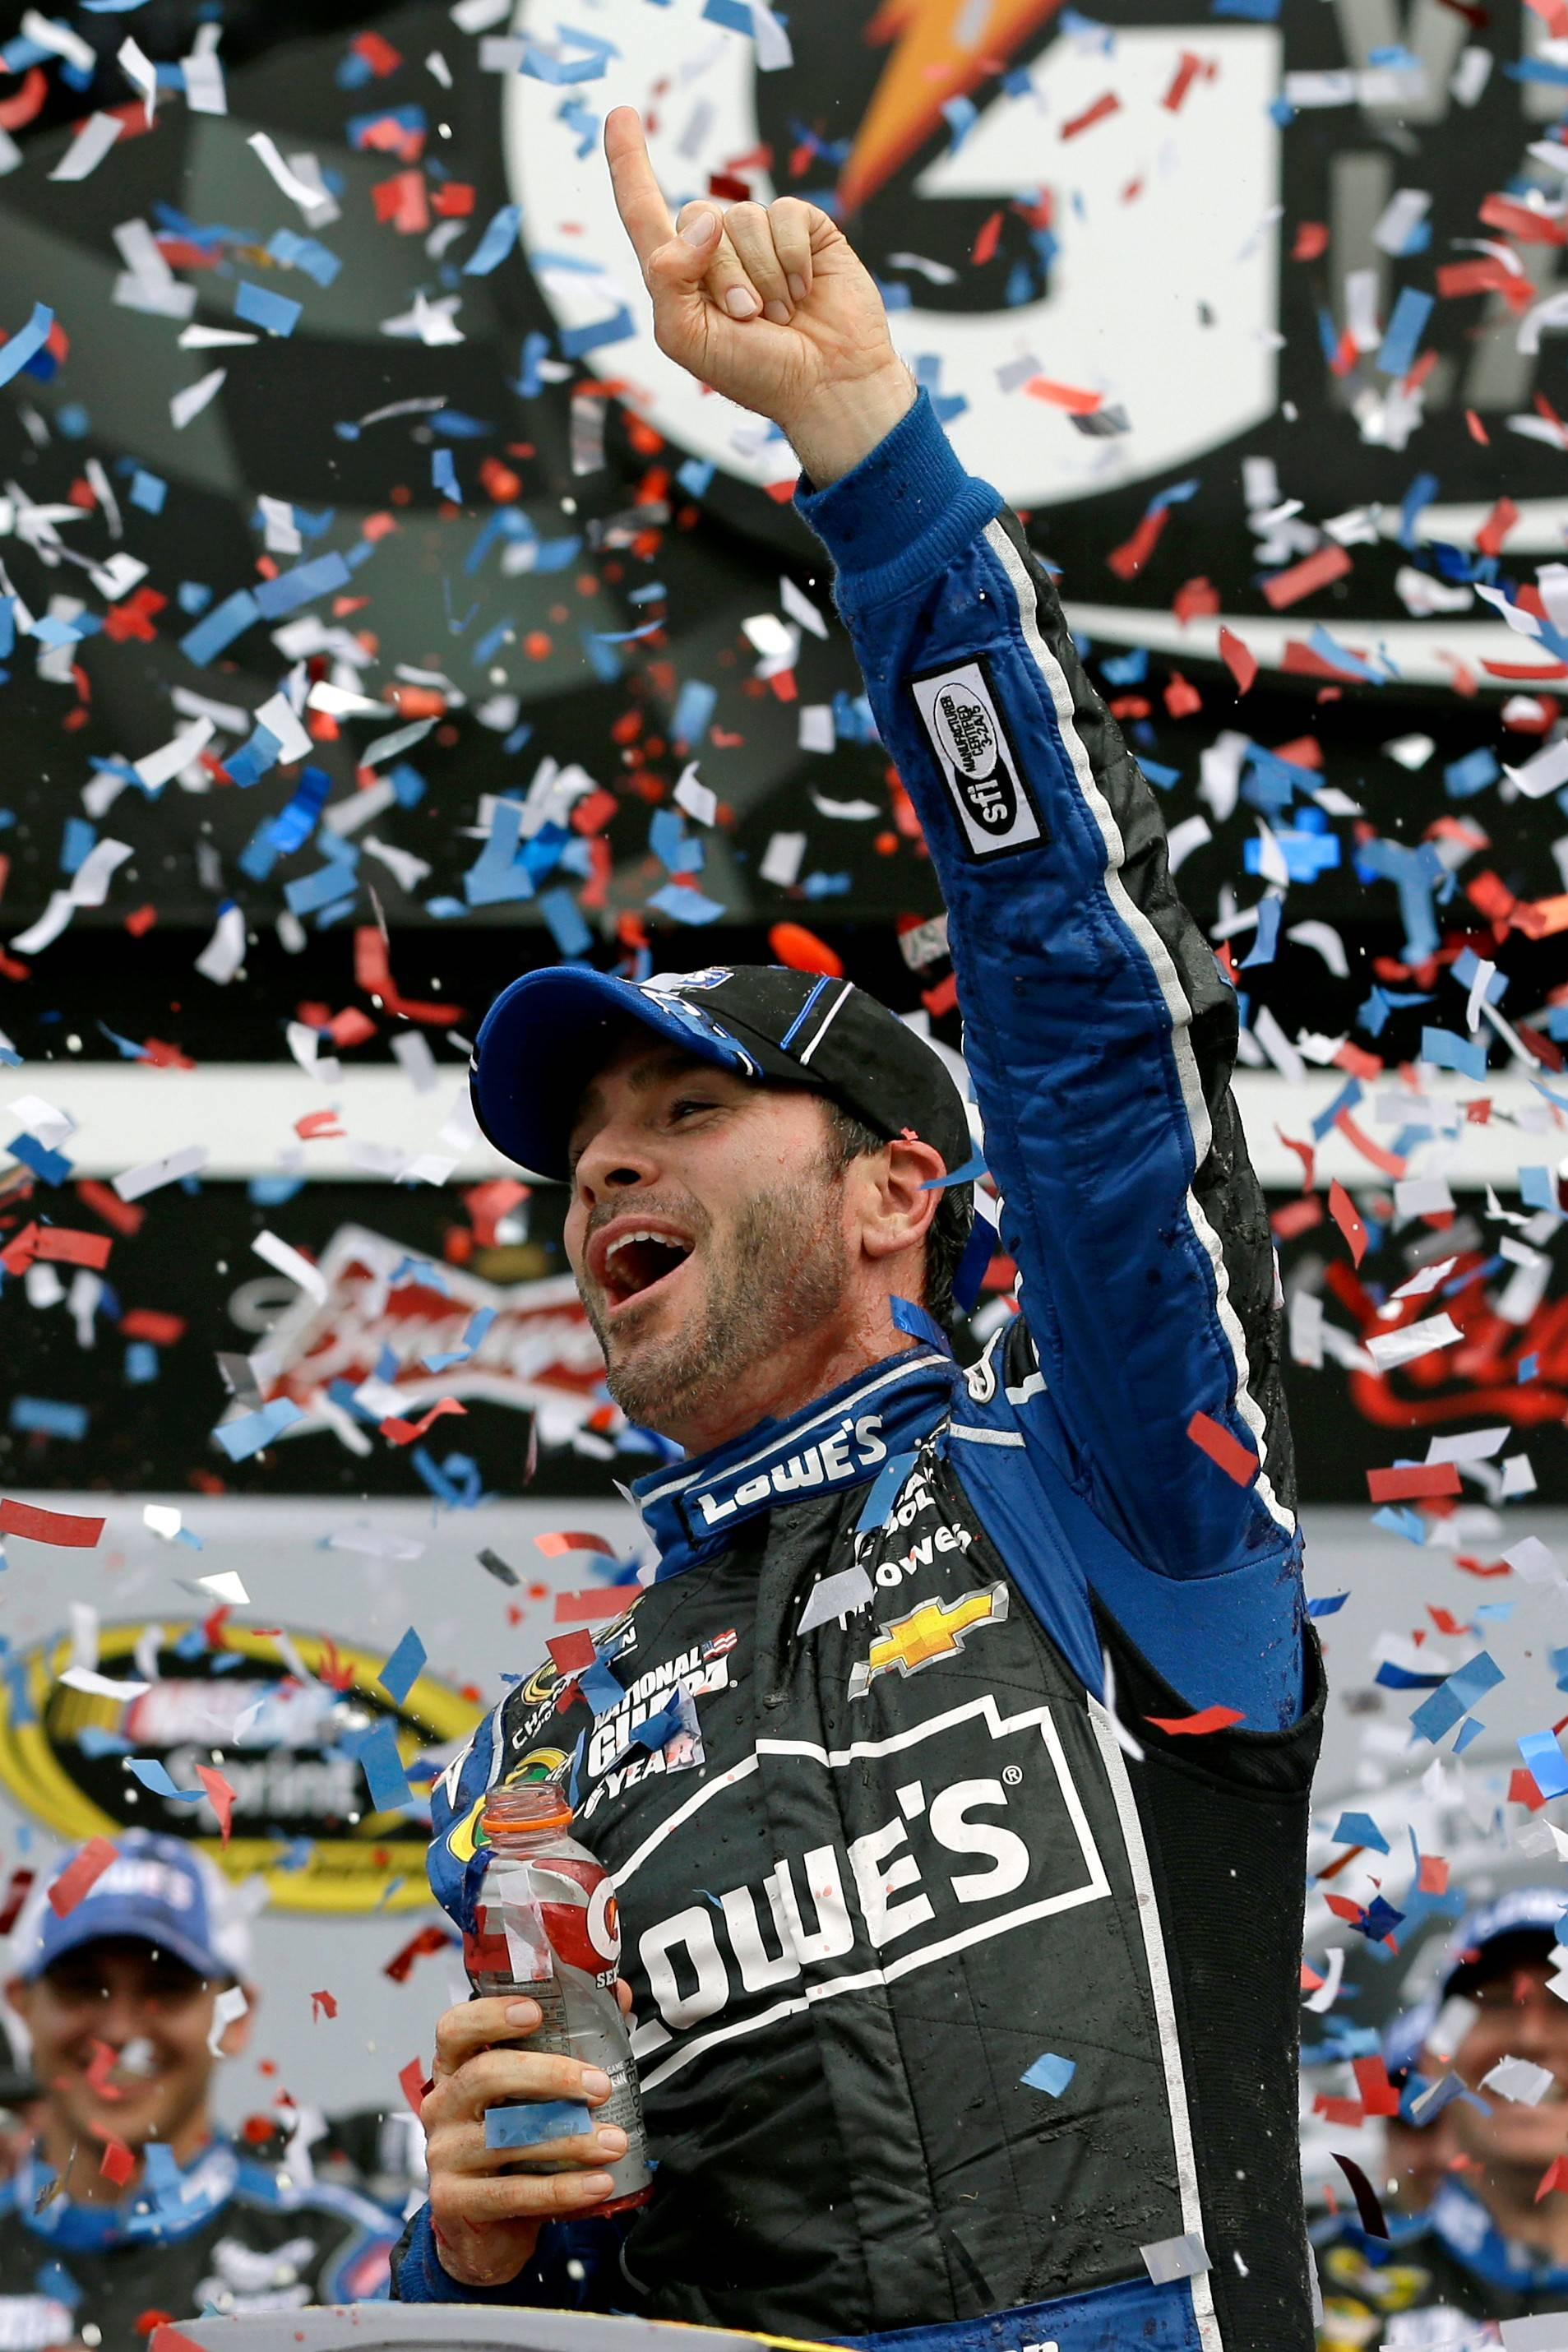 Jimmie Johnson hopes to repeat his 2013 Daytona win Sunday -- and go on to tie the record of seven Sprint Cup championships in a year.